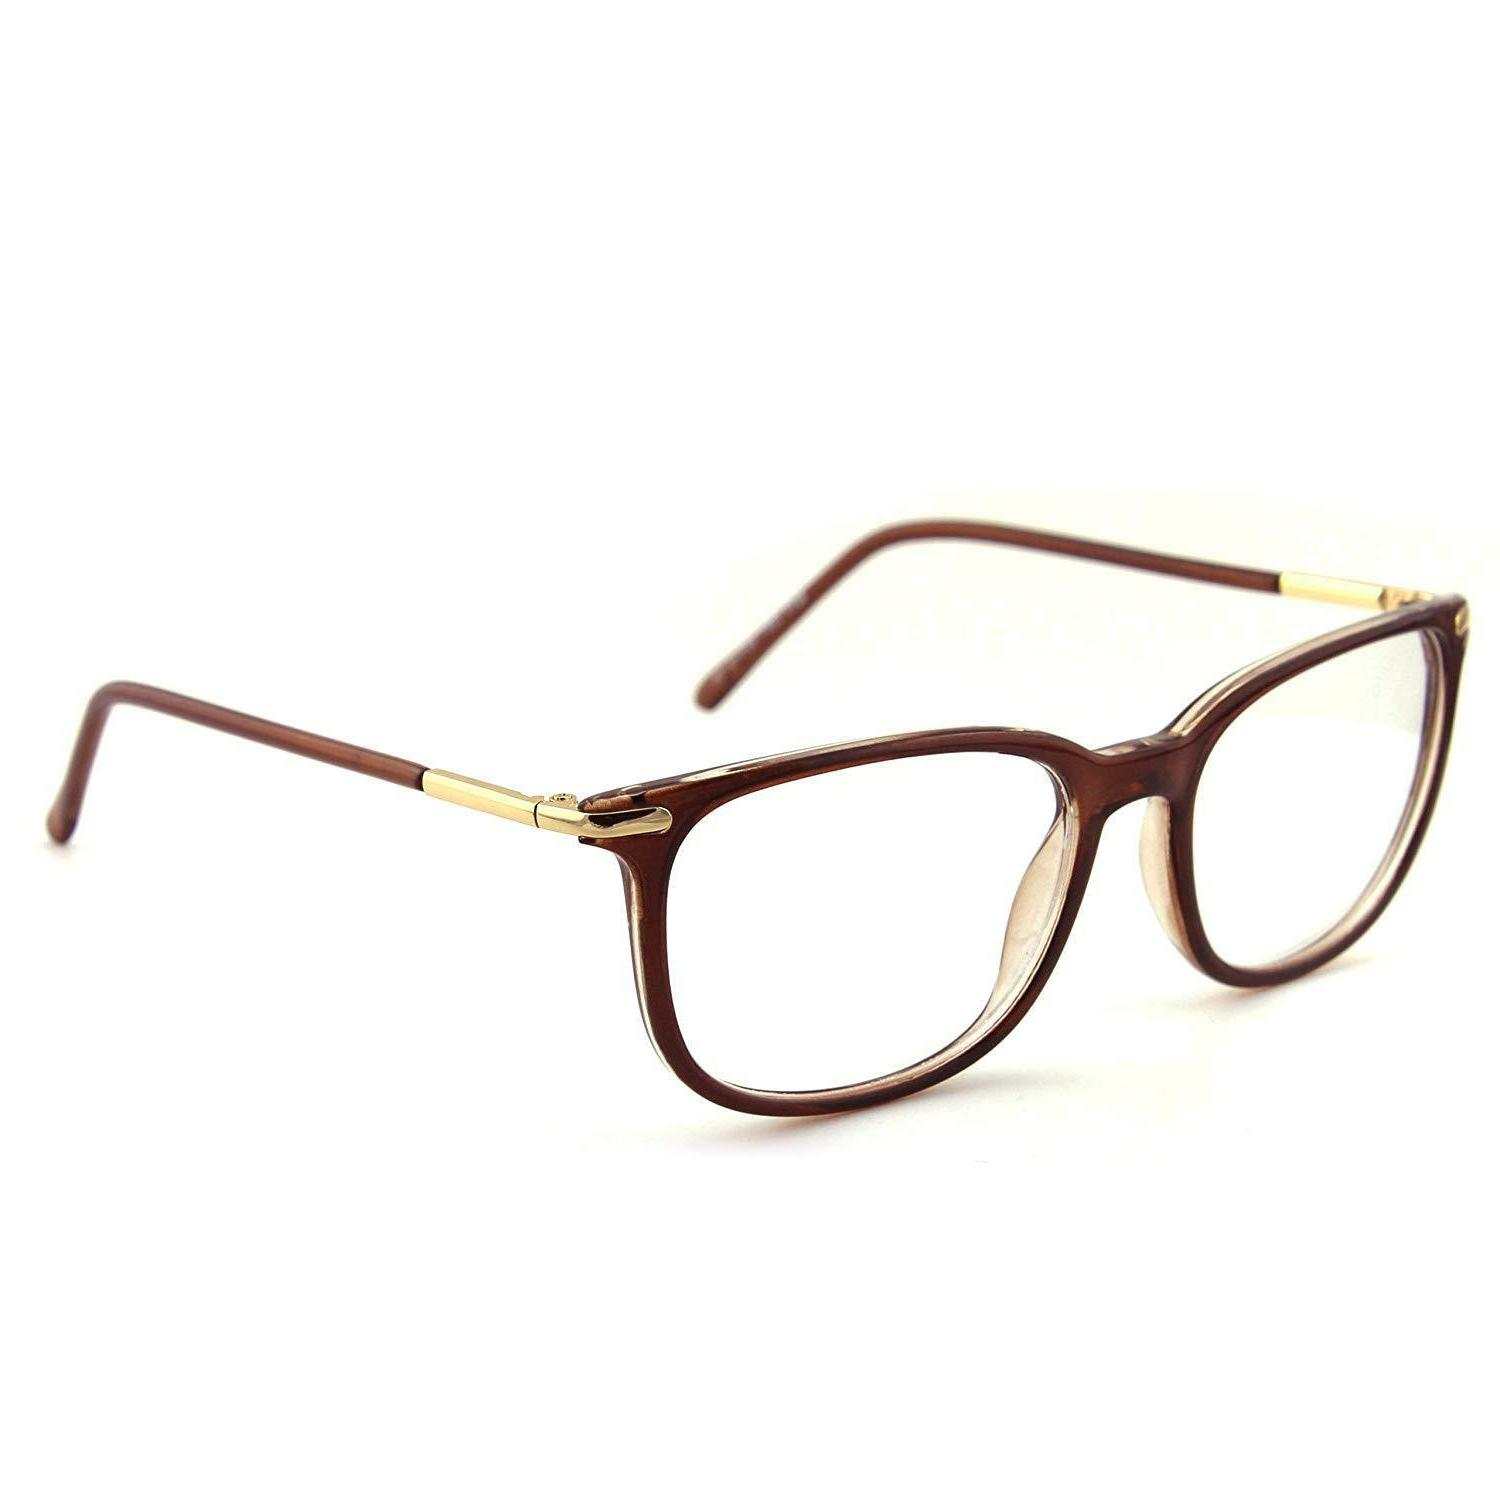 Fashion Temple Rimmed Clear Lens Eye Glasses